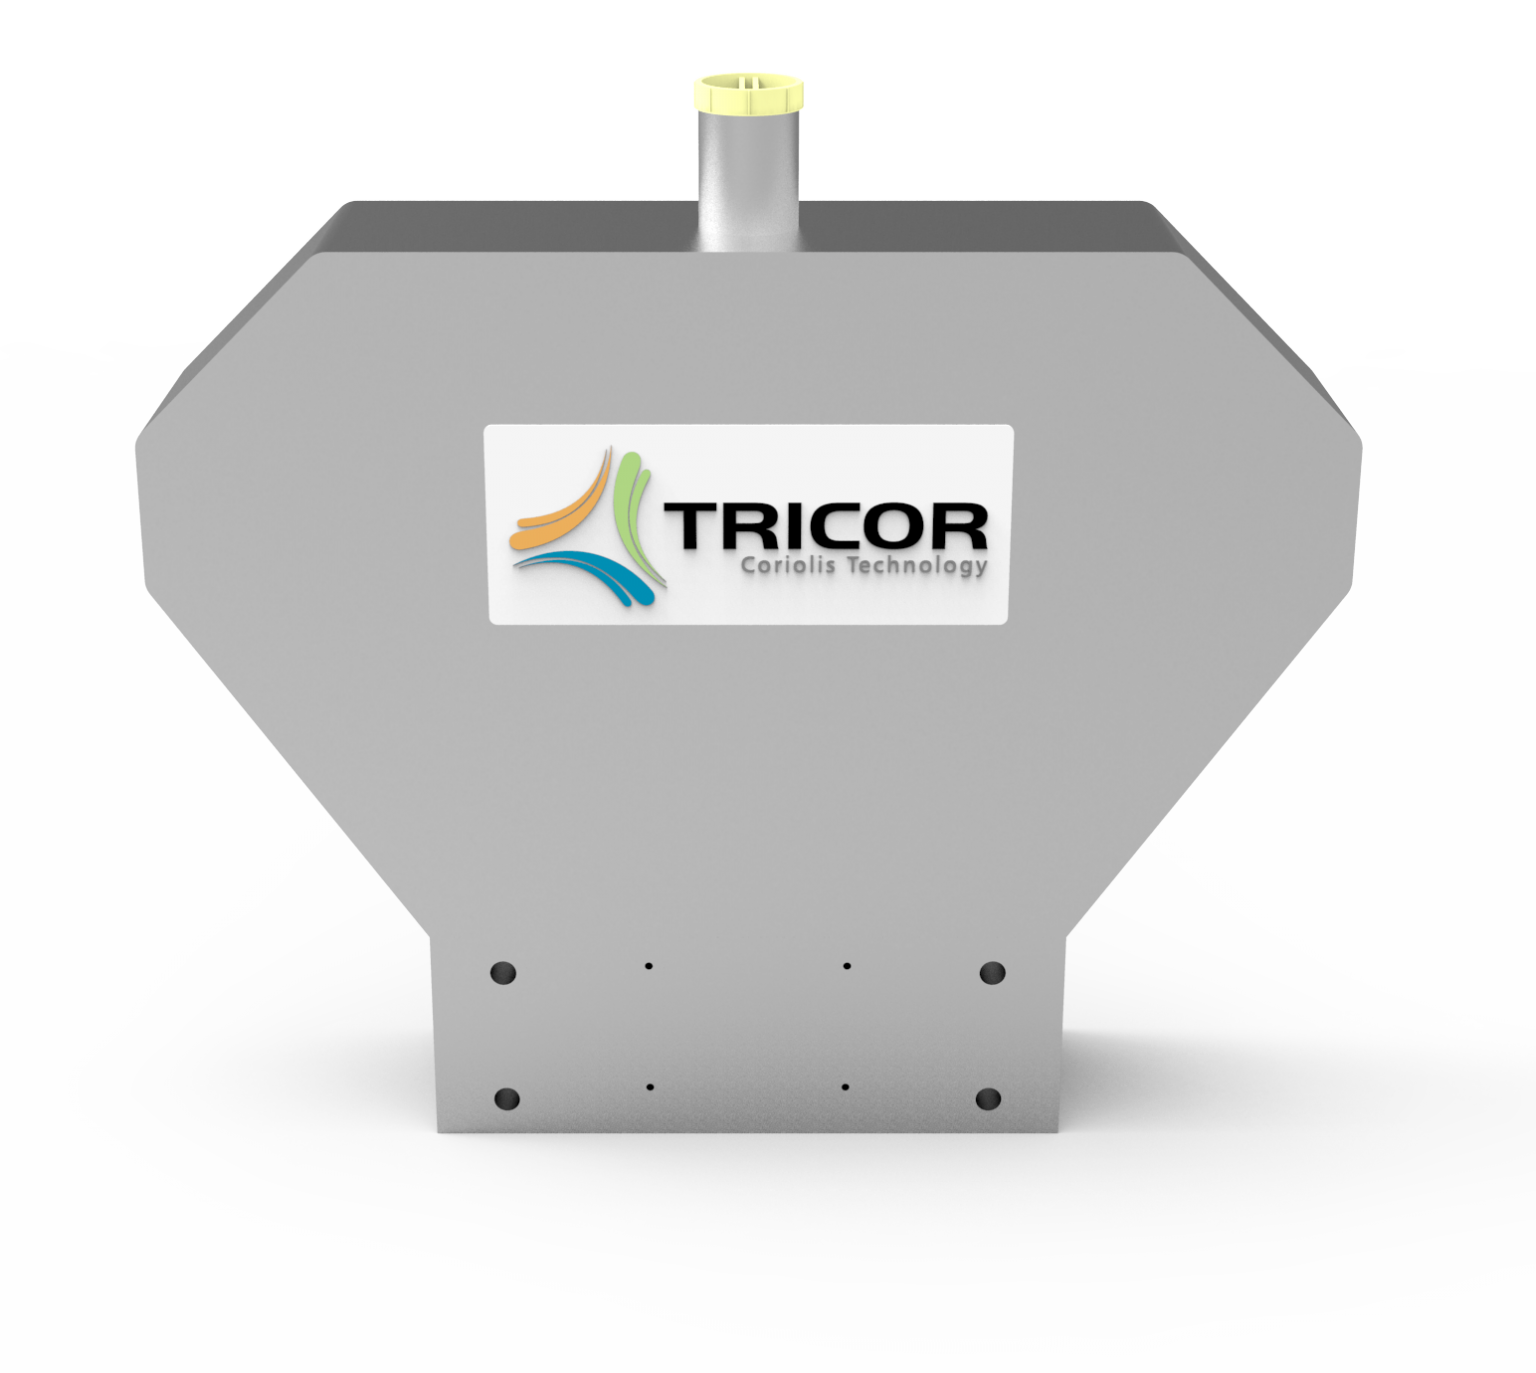 Litre Meter is distributing the TCM 0450 TRICOR Coriolis mass flow meter for clean energy fueling station concepts, in particular hydrogen stations, in the UK and Ireland